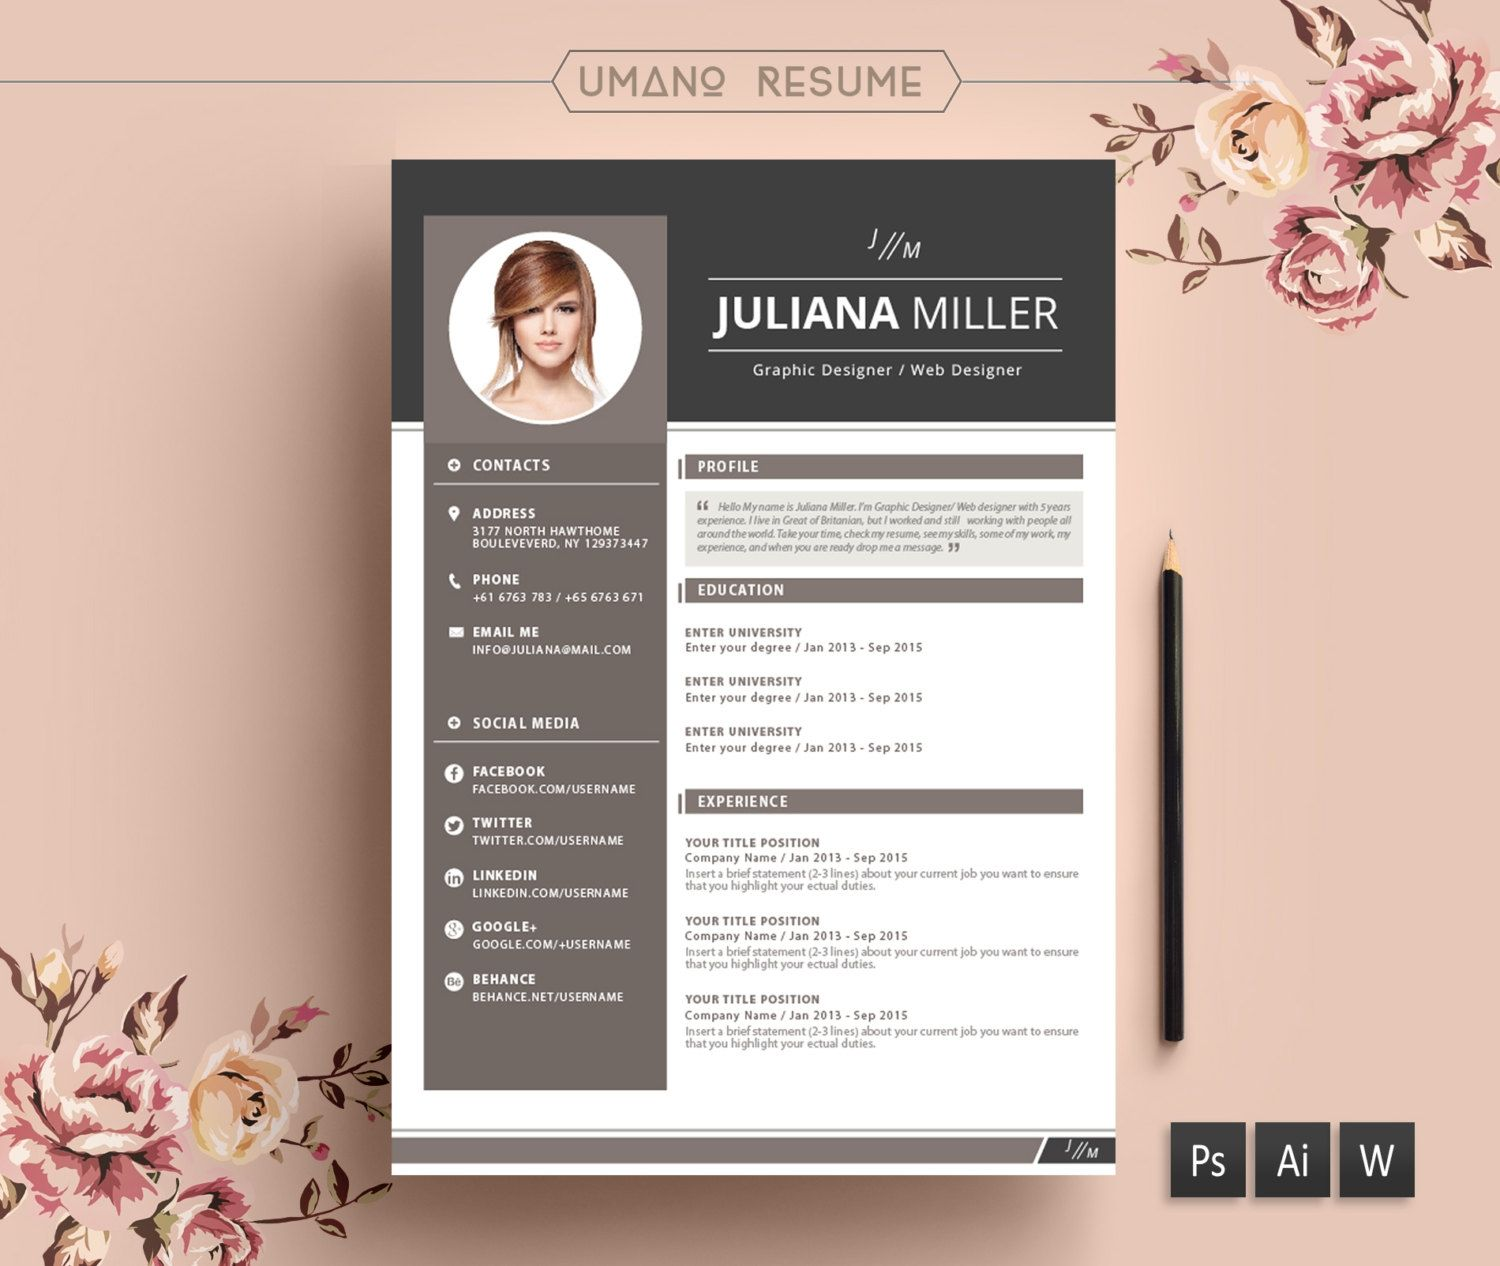 creative resume templates free examples within templ template word samples for over Resume Creative Resume Word Template Free Download